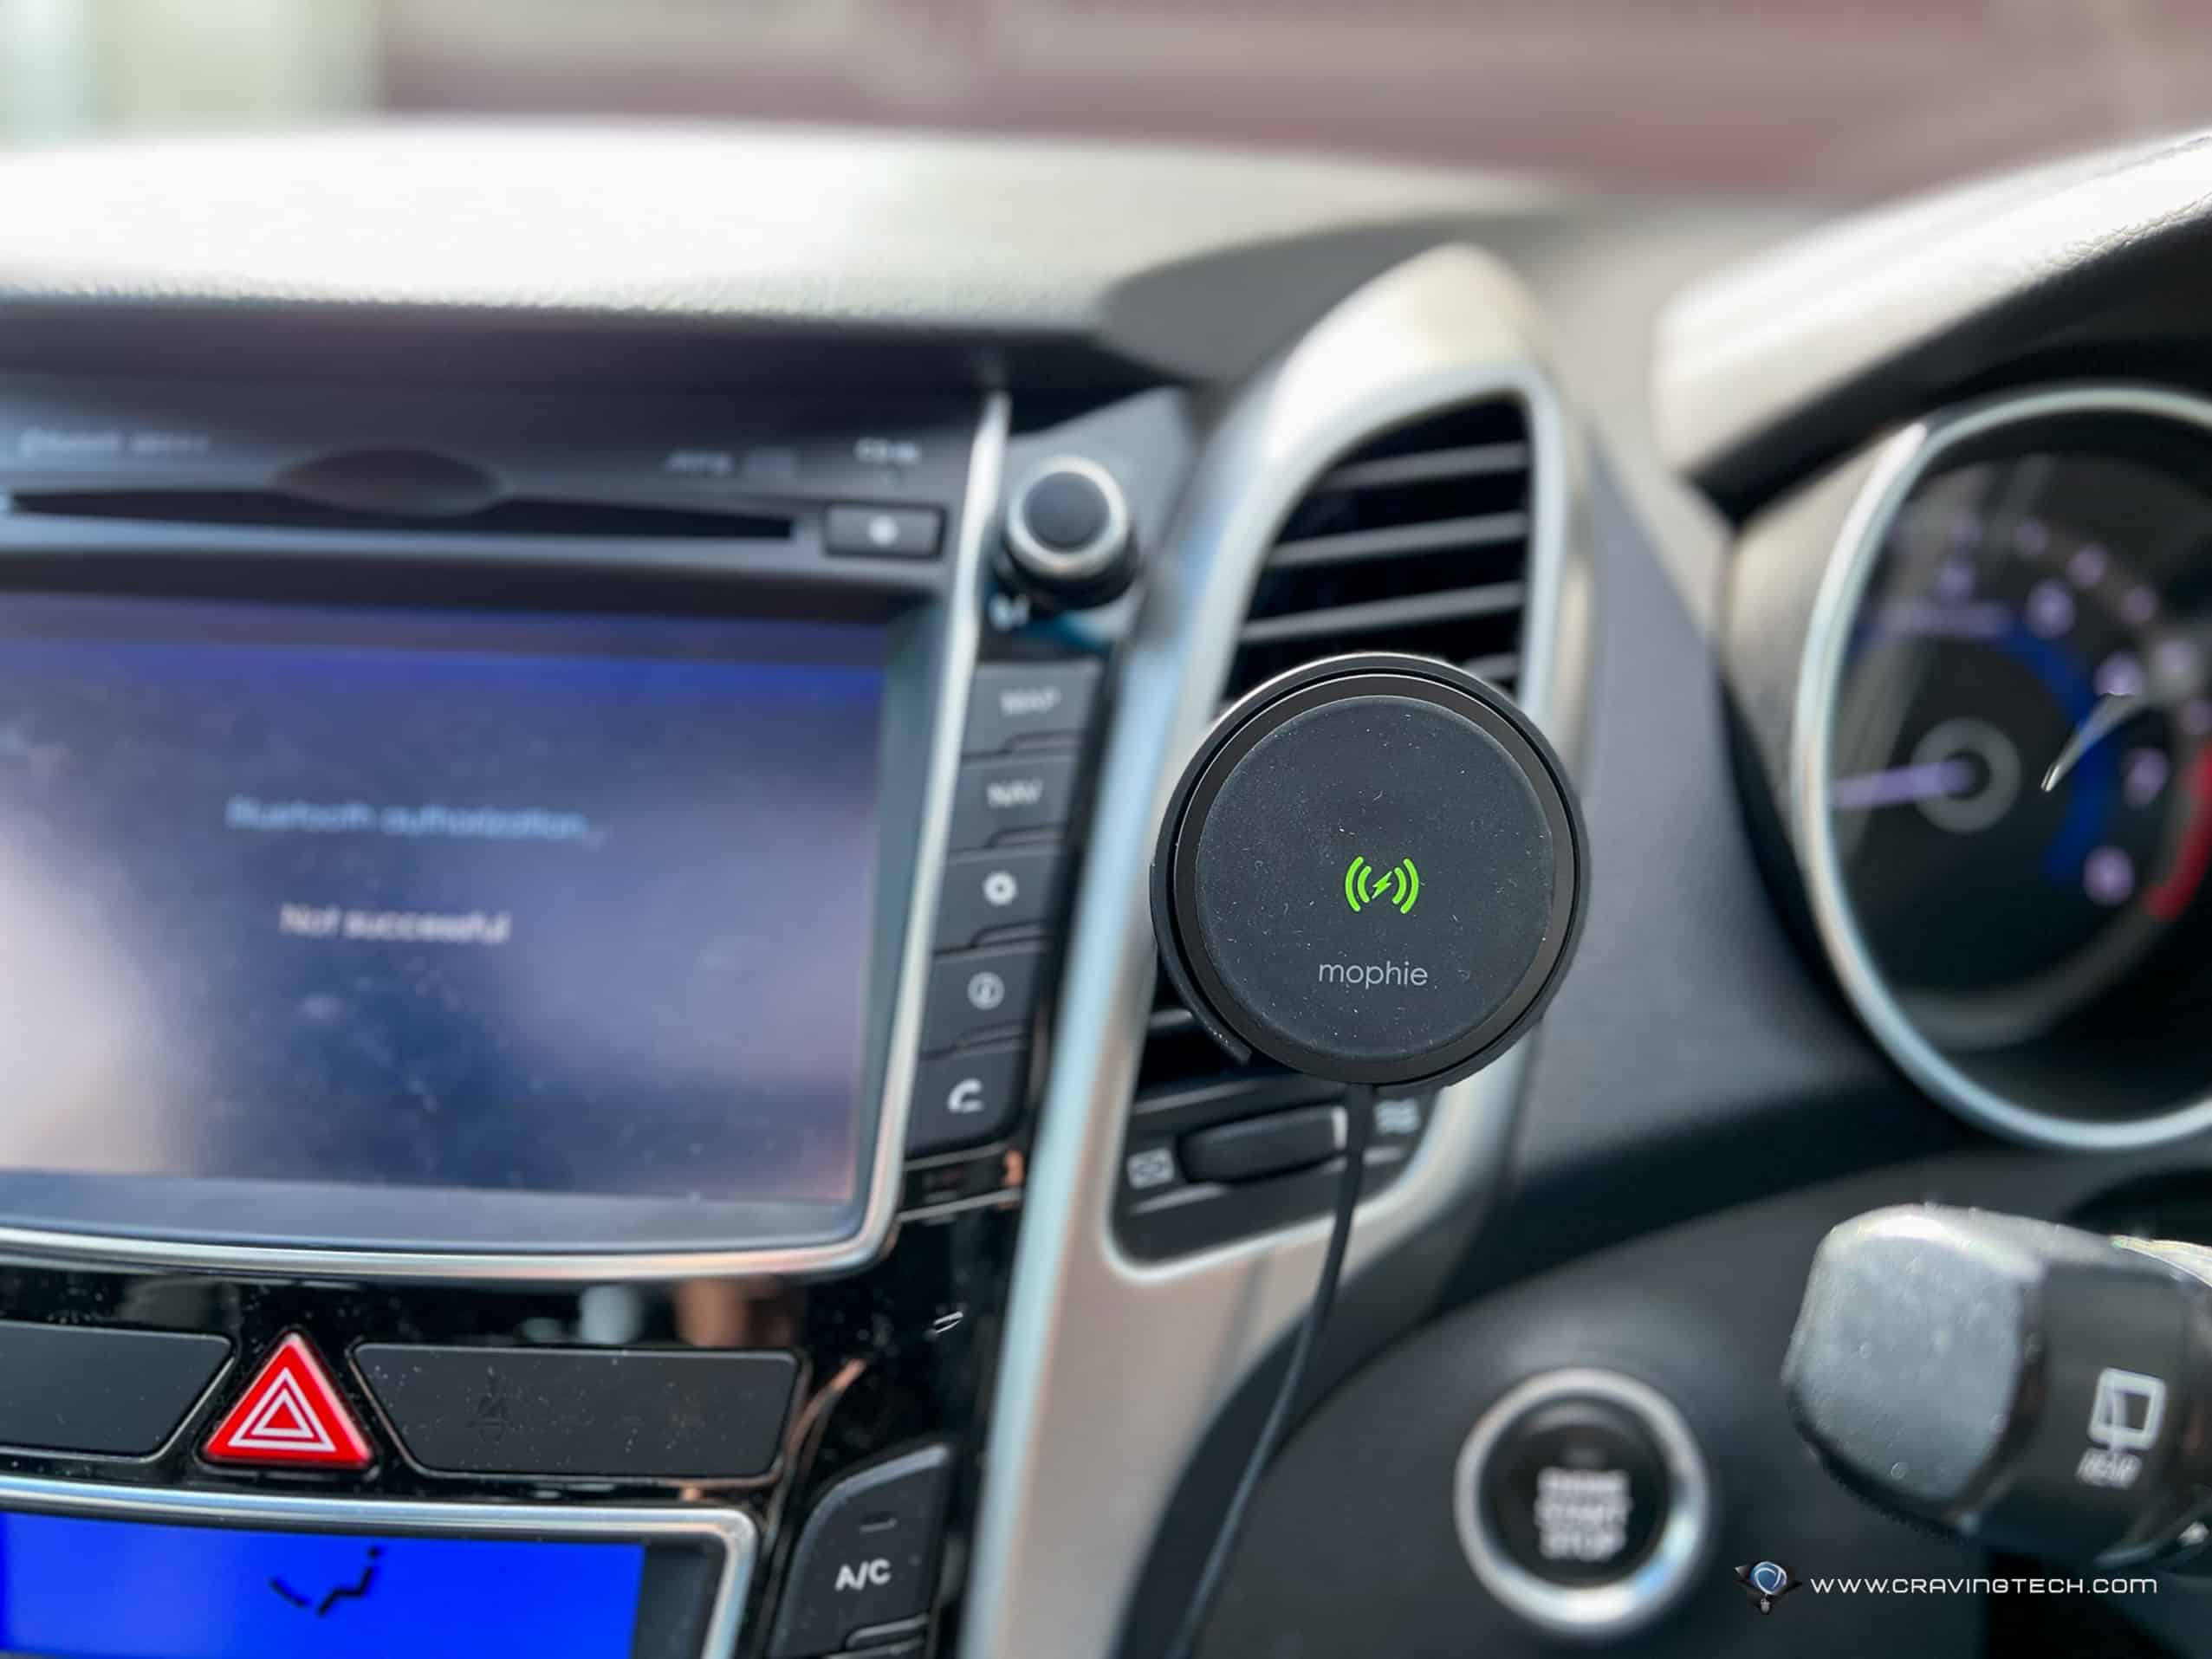 Snap that iPhone on your car's vent